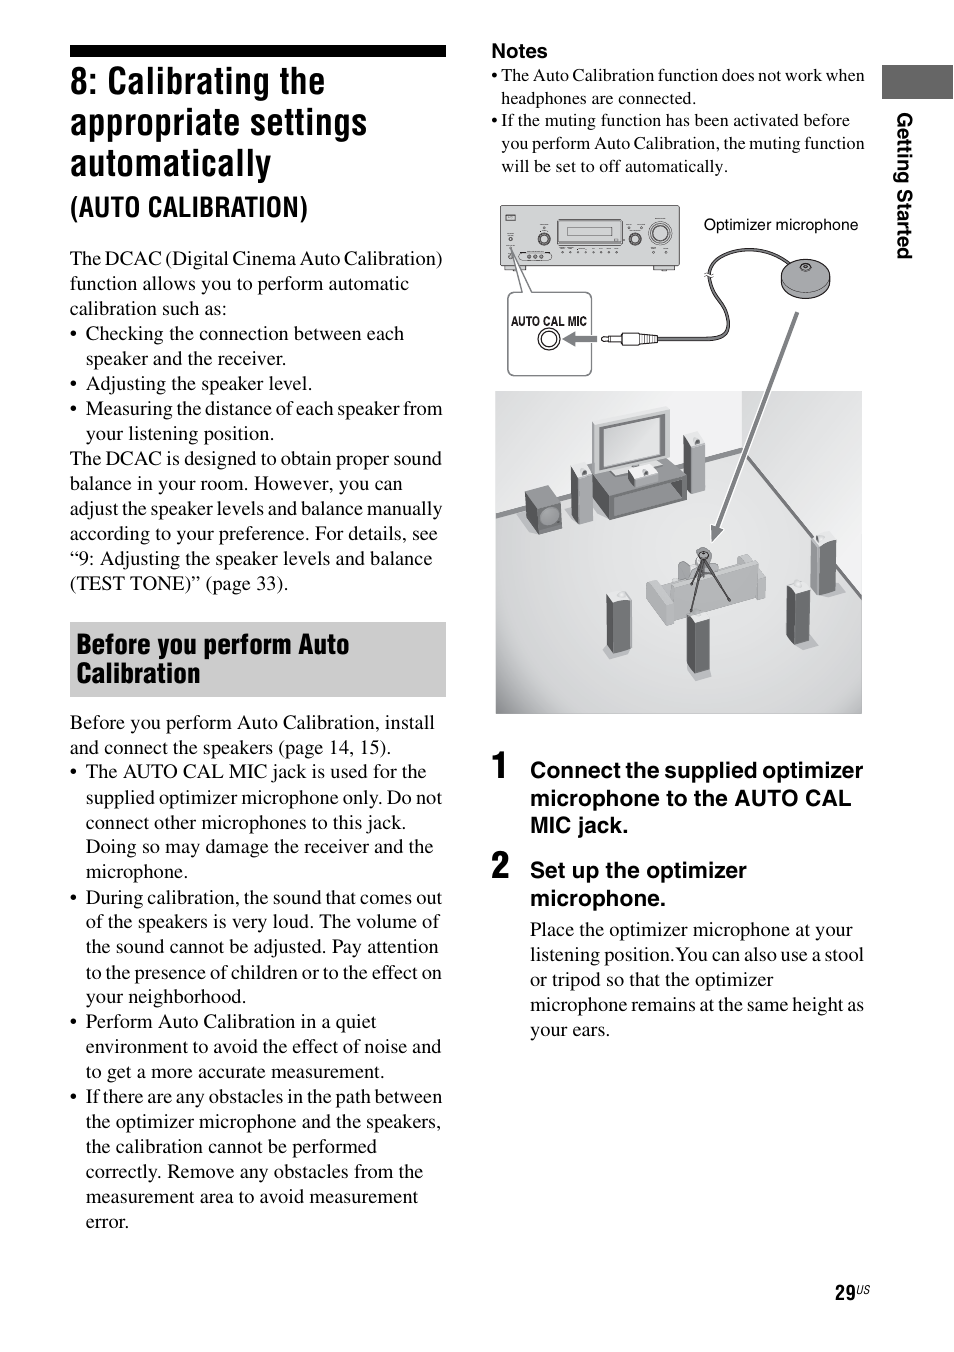 Sony str-dh720 user manual | 88 pages.